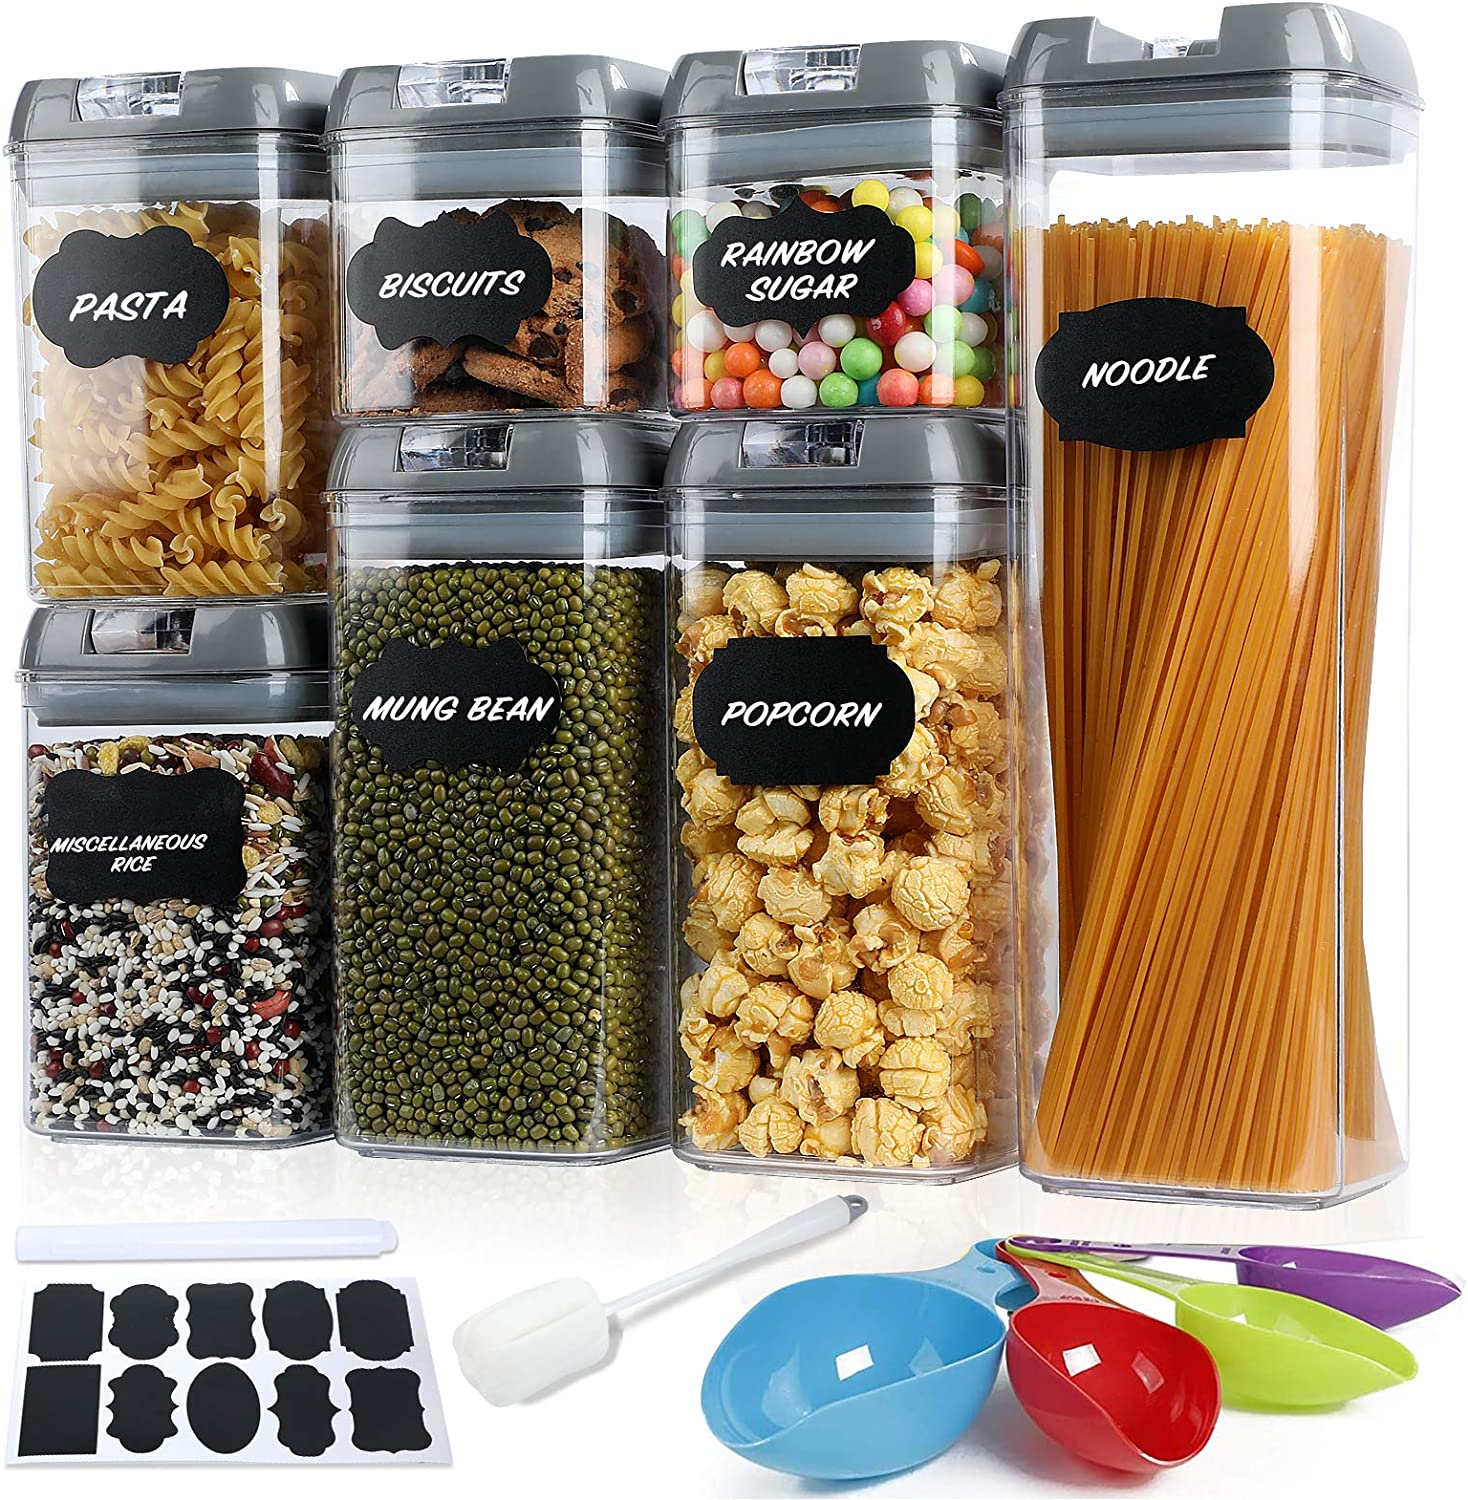 Food Storage Containers Sealed with Easy Lock Lids,7 Pcs BPA Free Clear Plastic Pantry Organization and Storage for Kitchen,Include Labels/Chalk Marker/Spoons/Brush.(Gray)